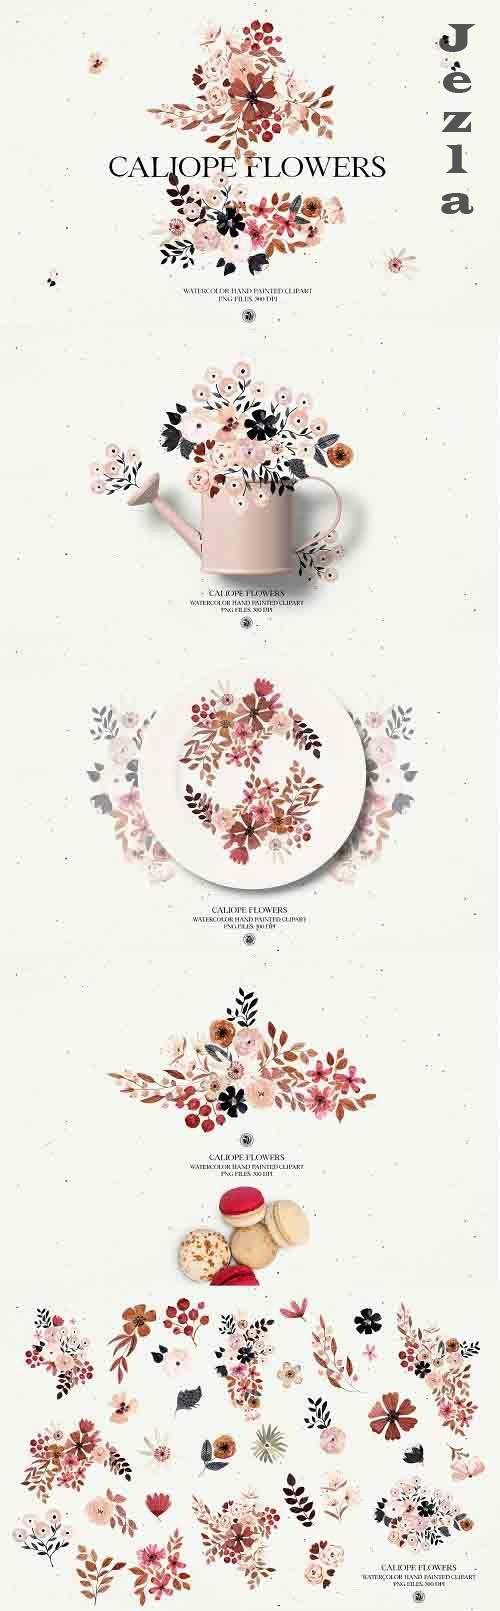 Caliope Flowers - watercolor clipart - 6071045